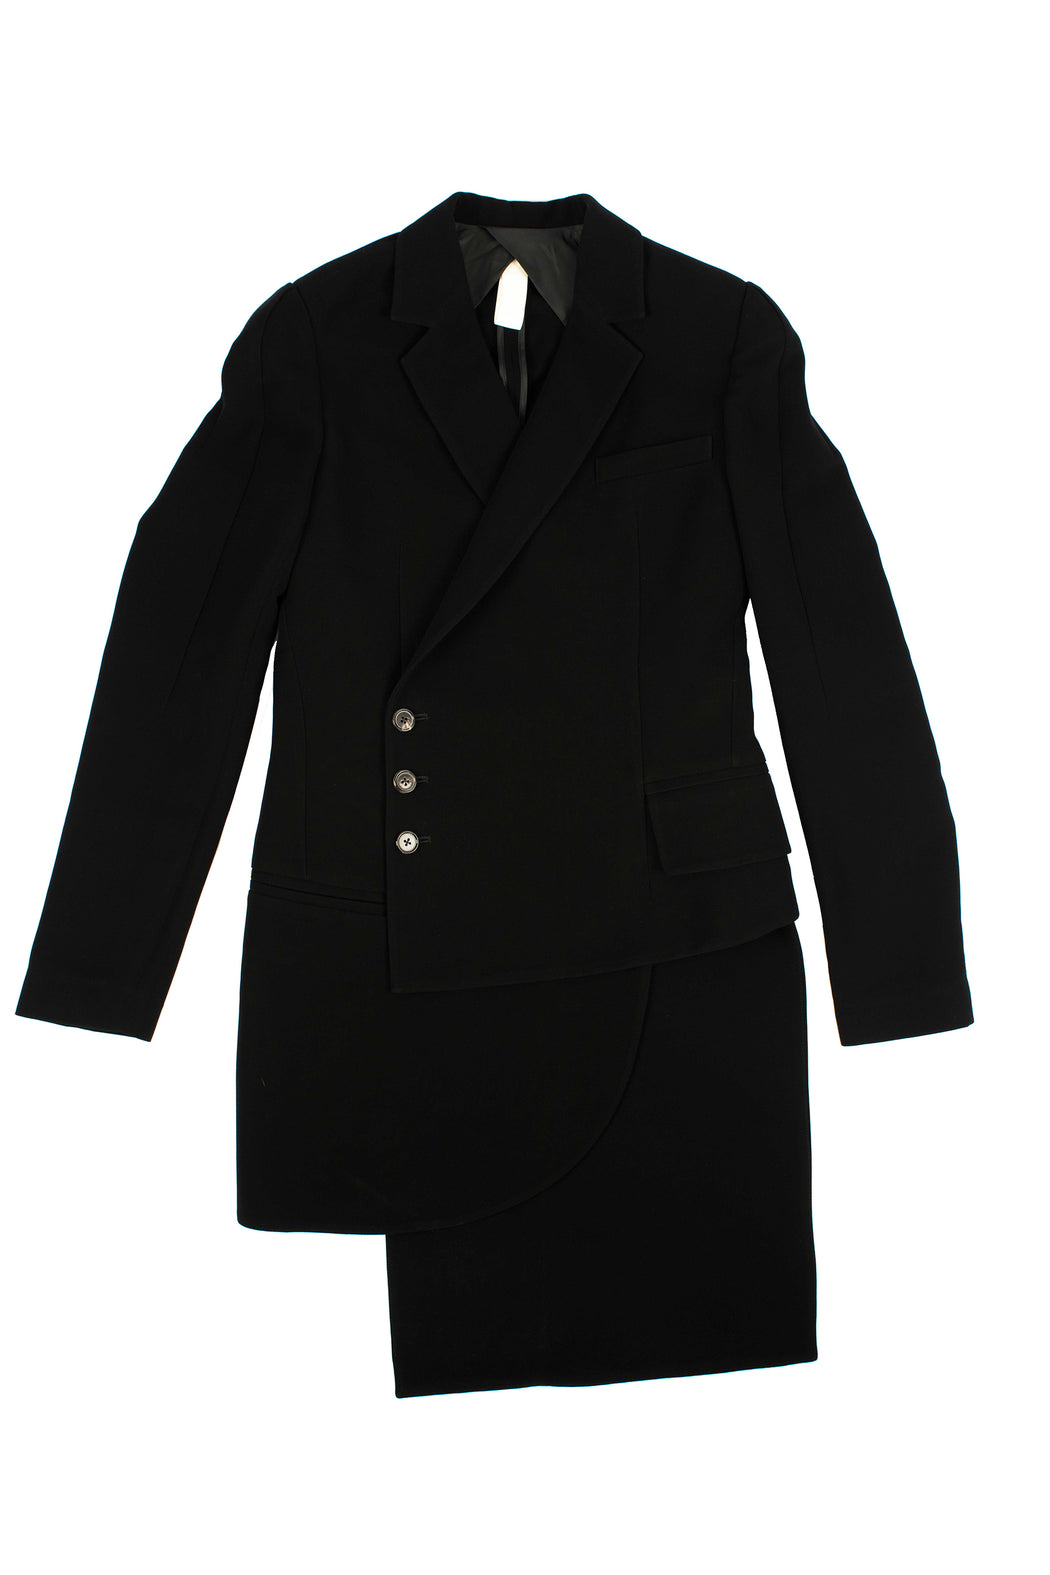 Triple Layered 3 Button Coat - Black